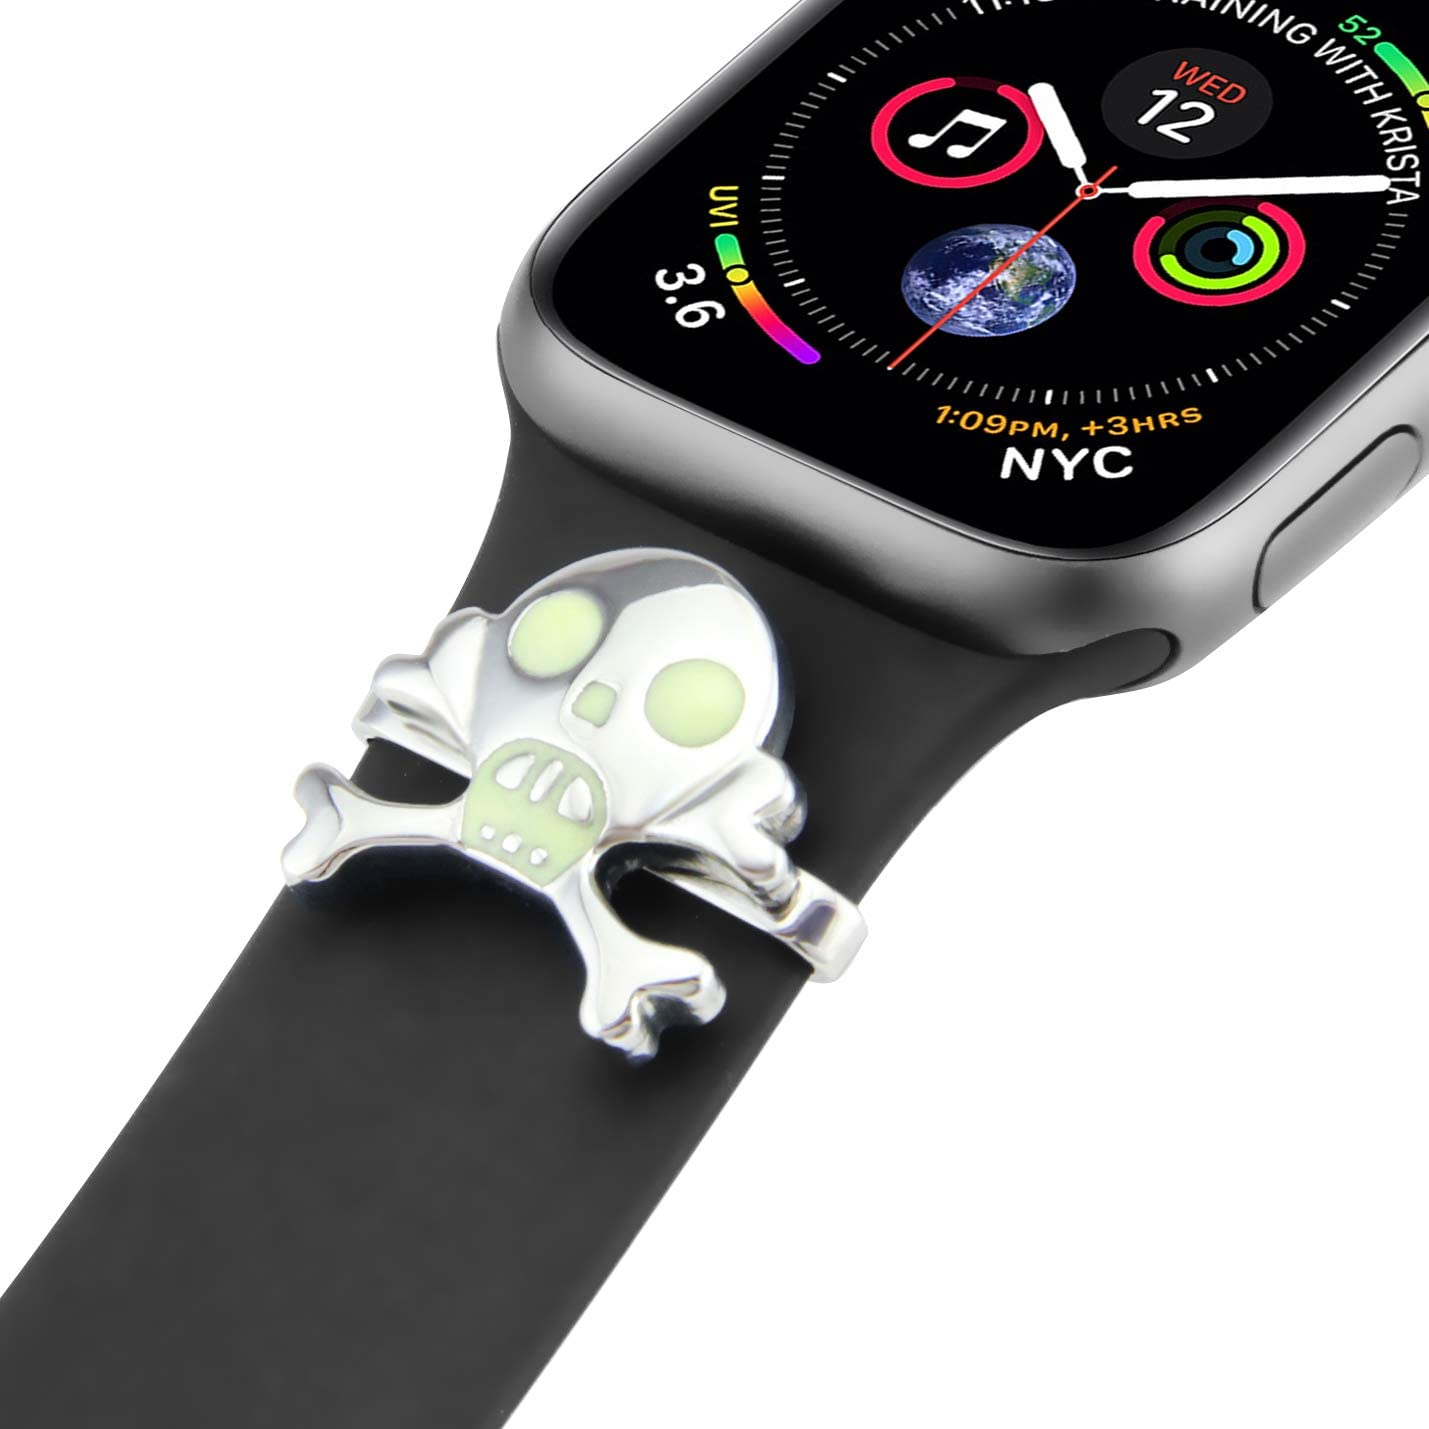 BaiHui Metal Decorative Rings Loops Silicon Band Charms Accessory Compatible with Apple Watch Silicon Bands 40mm 38mm Series 5/4/3/2 (Silver,Skull)